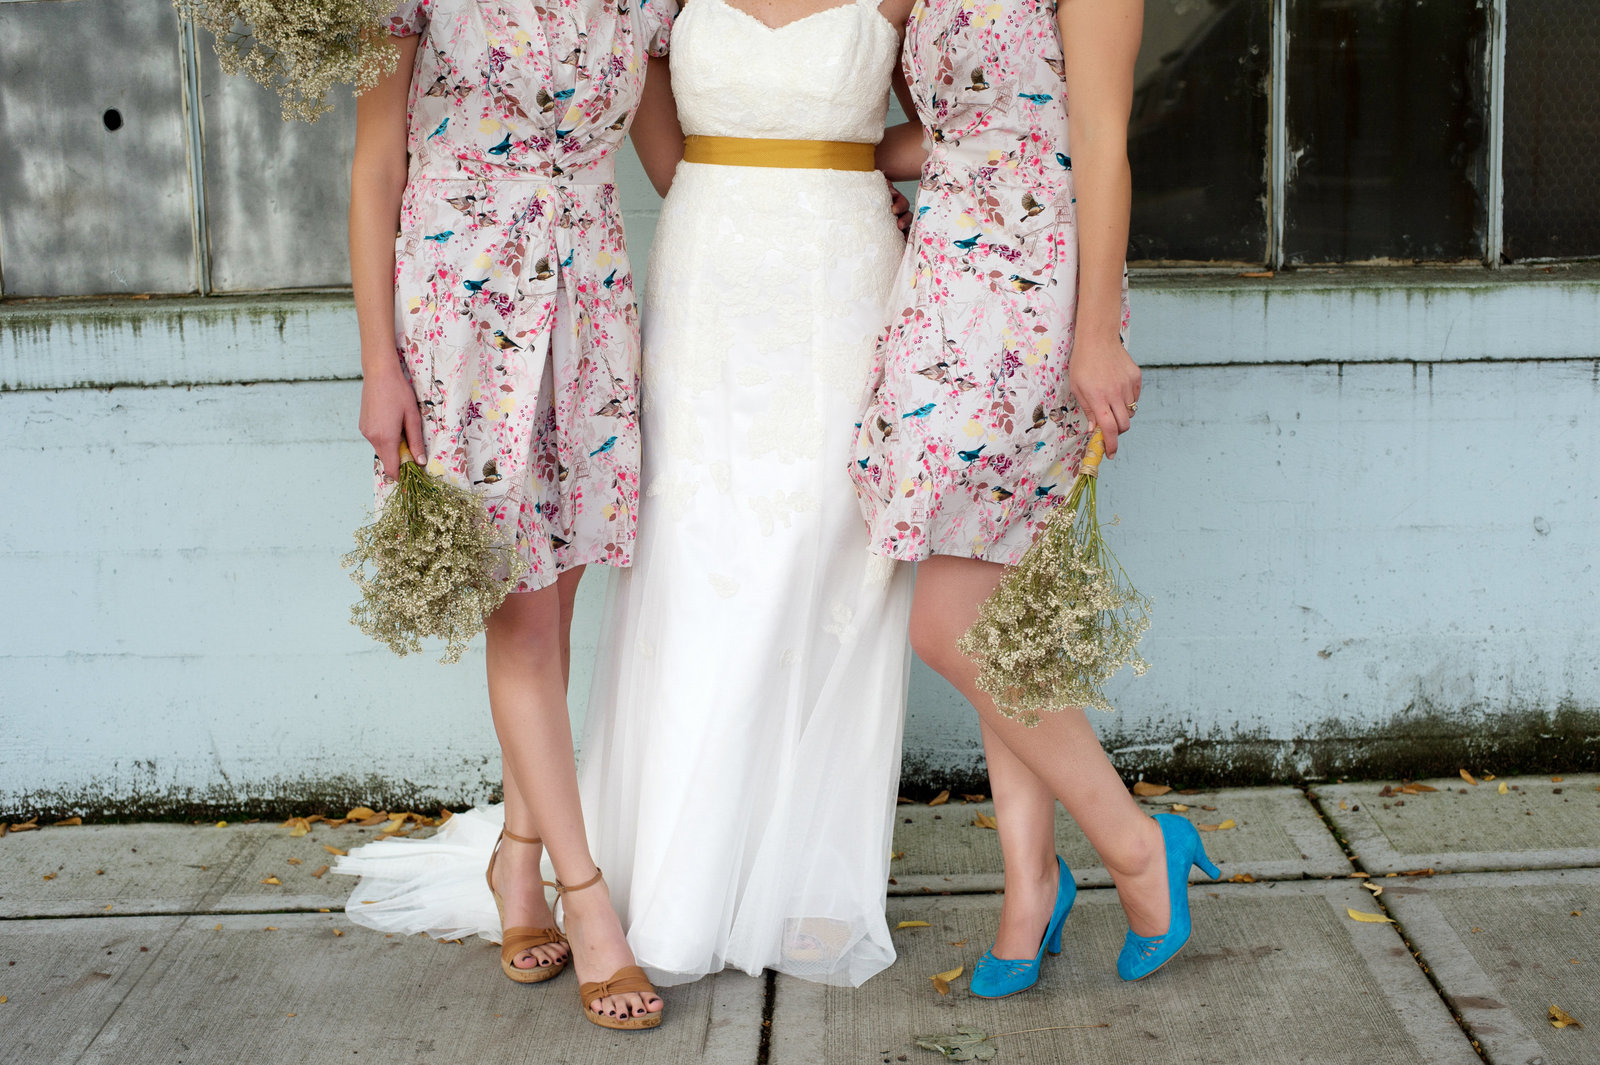 pretty floral  bridesmaids dresses and colorful shoes